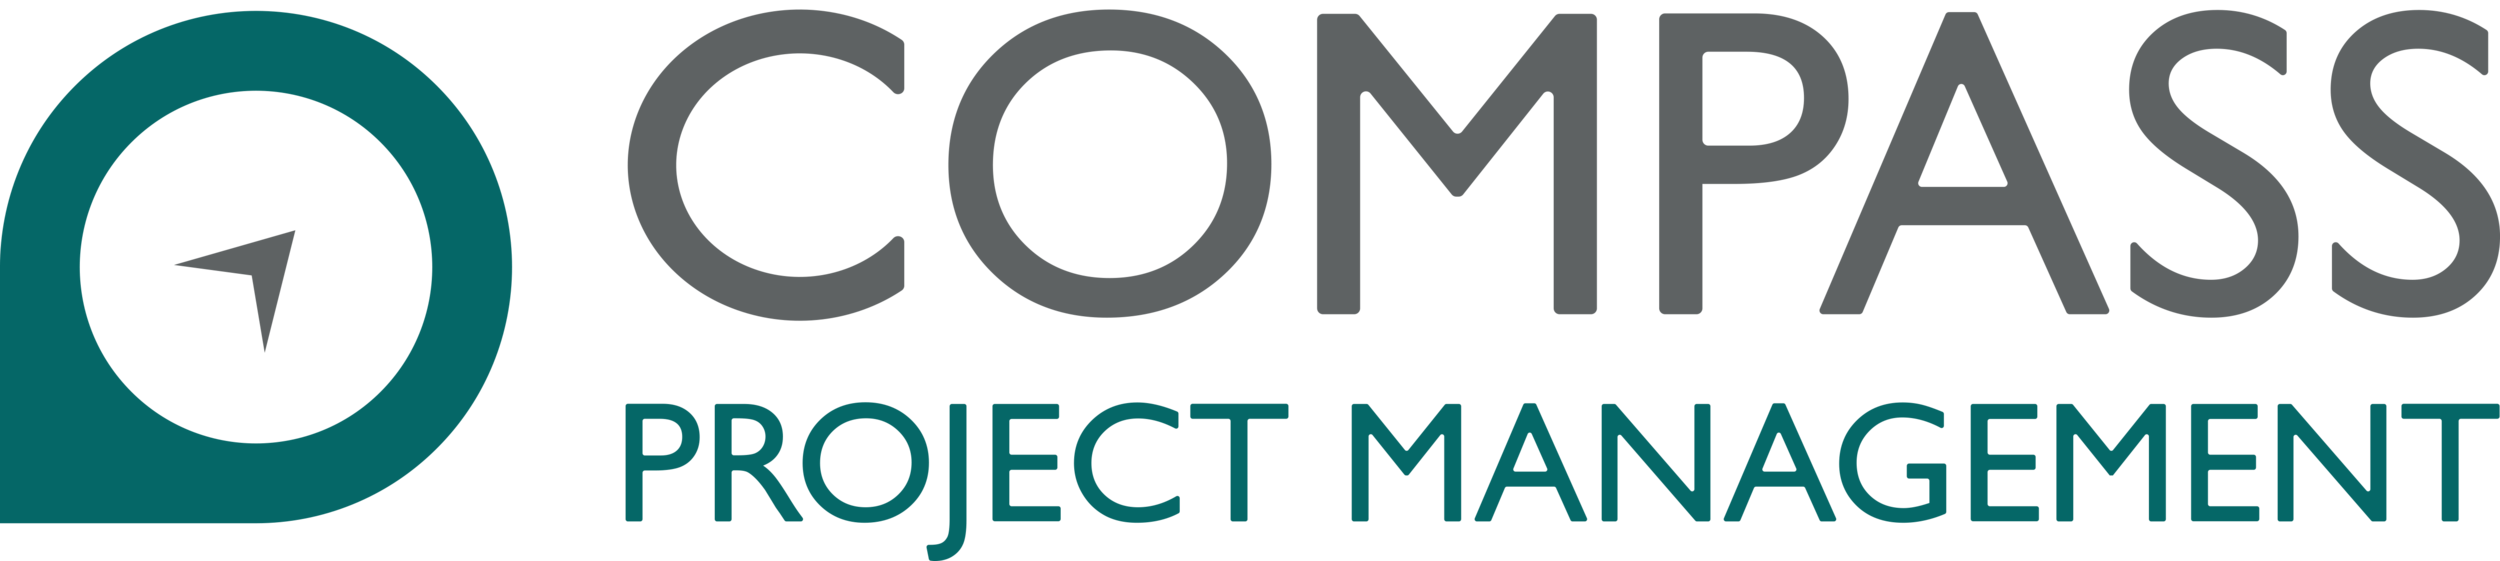 Compass PM Logo.png